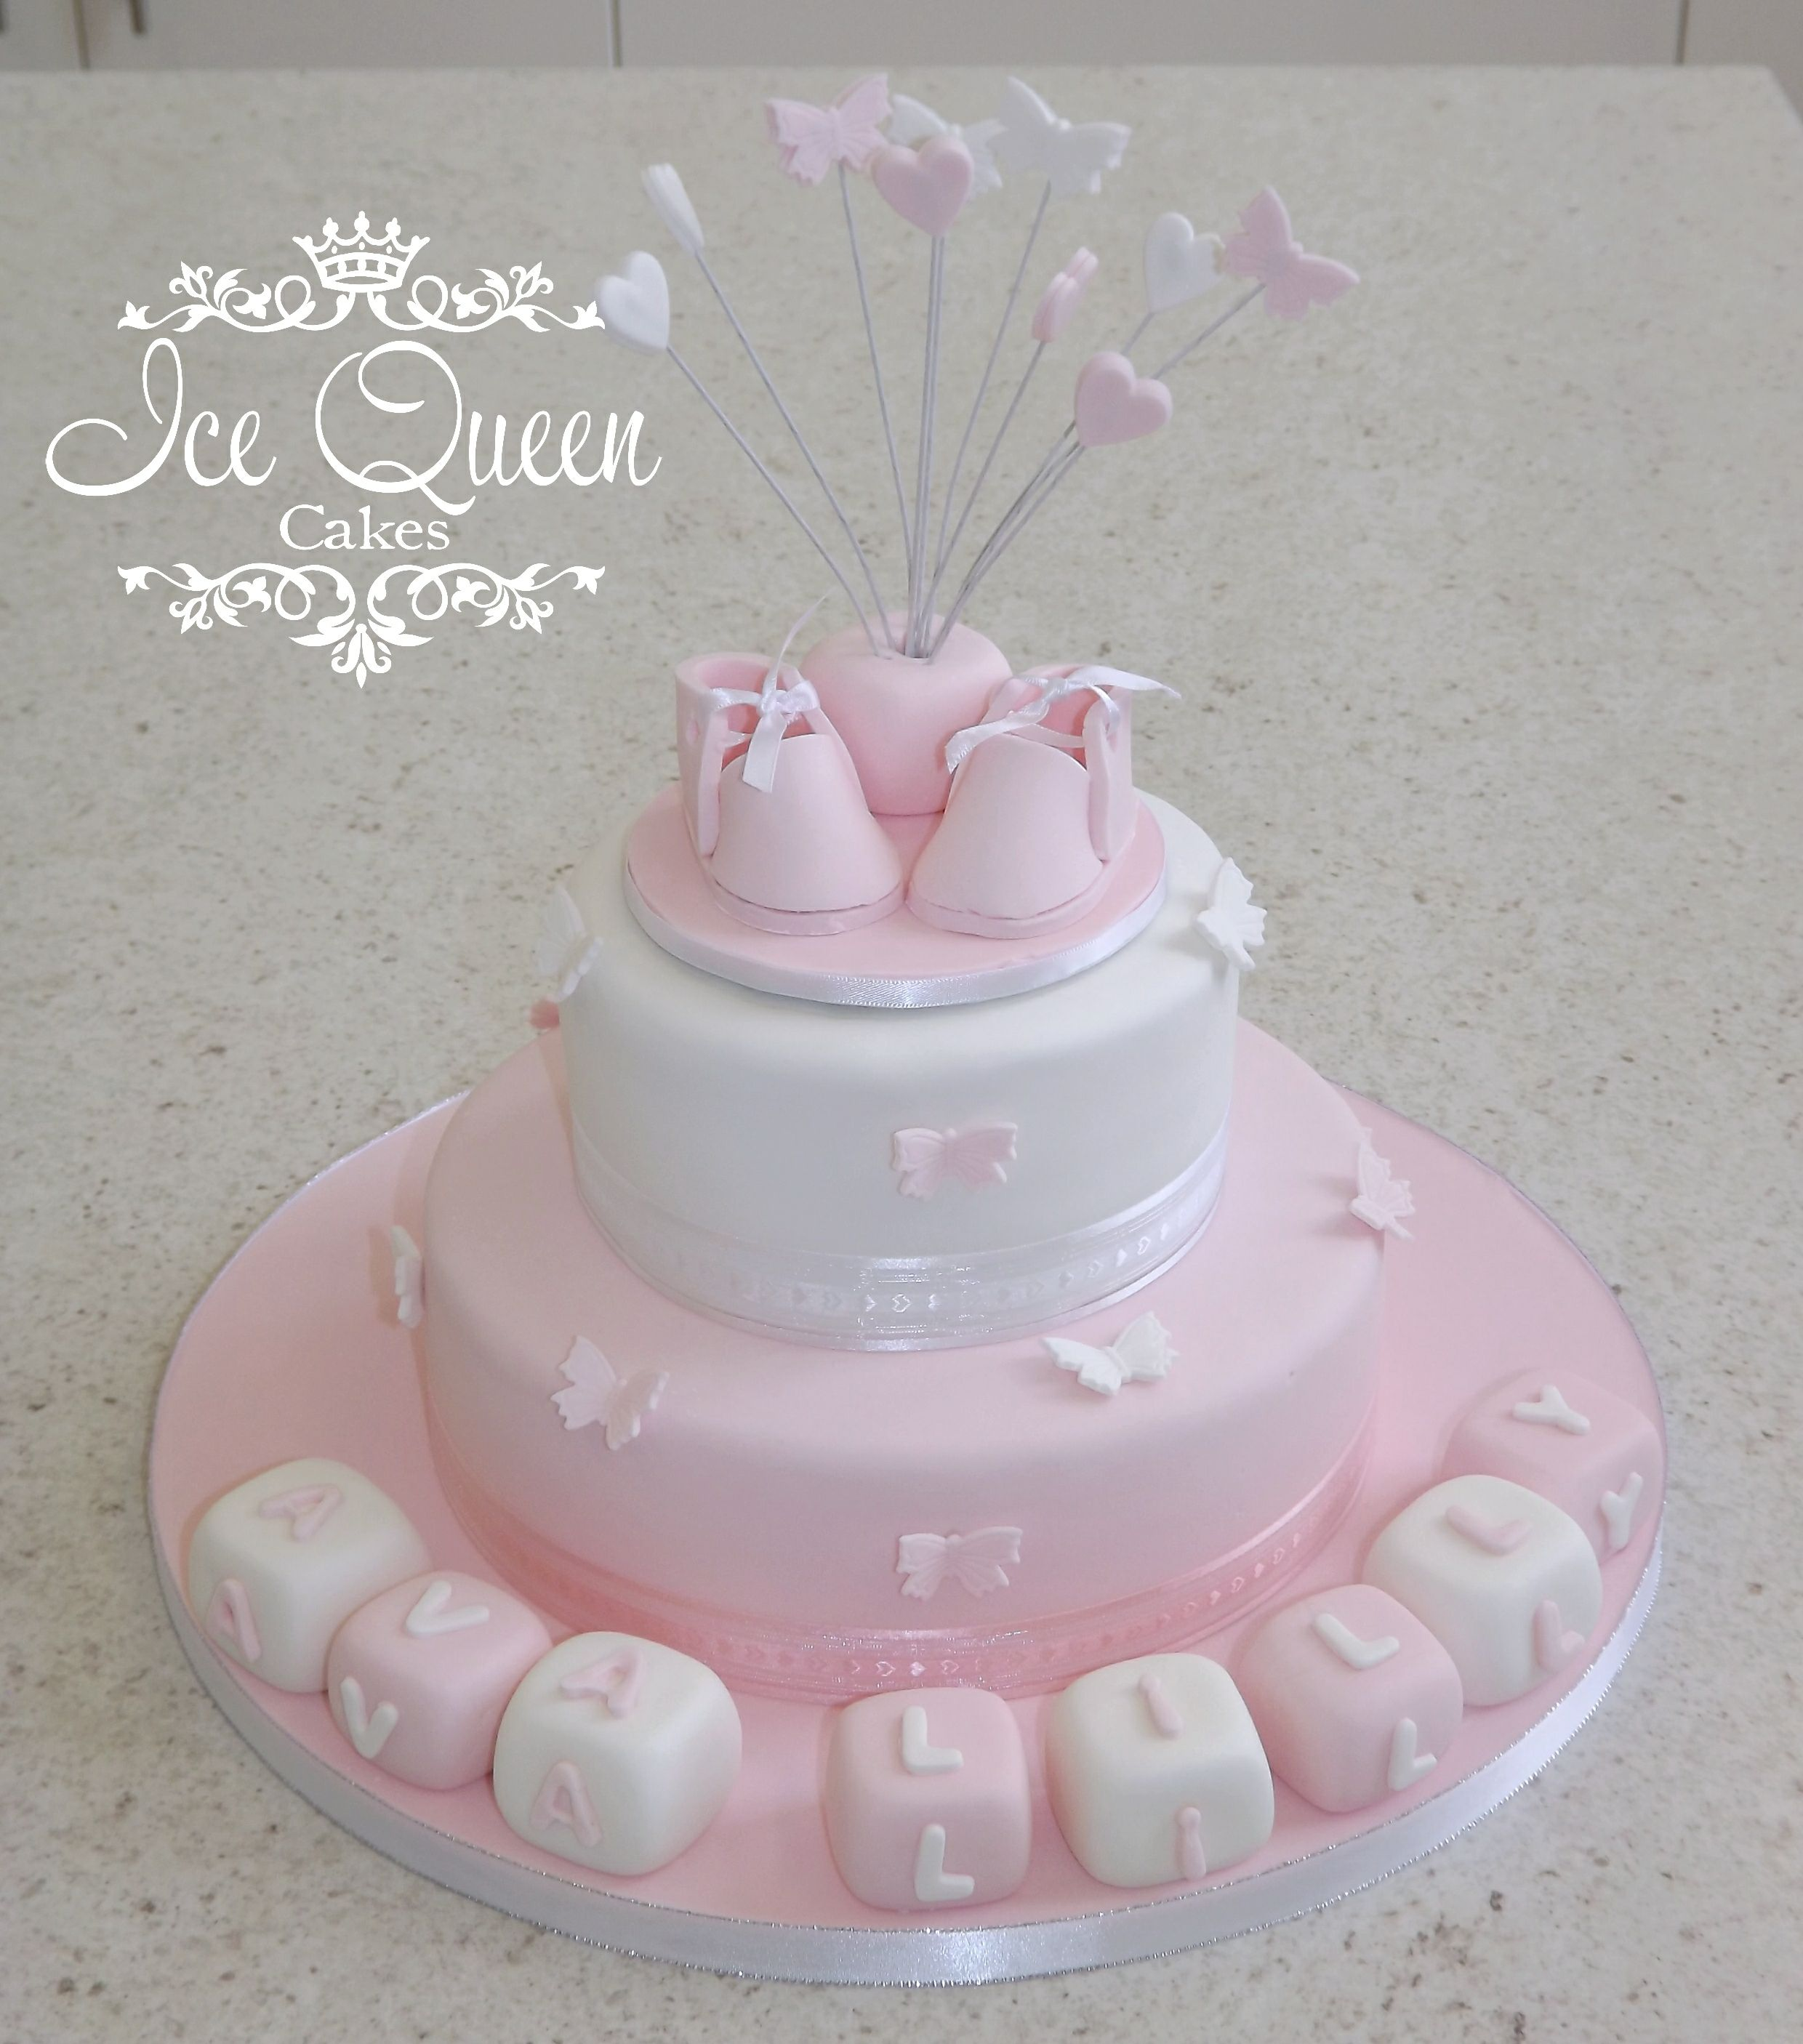 2 tier pink & white baby christening cake Butterflies & blocks Ice